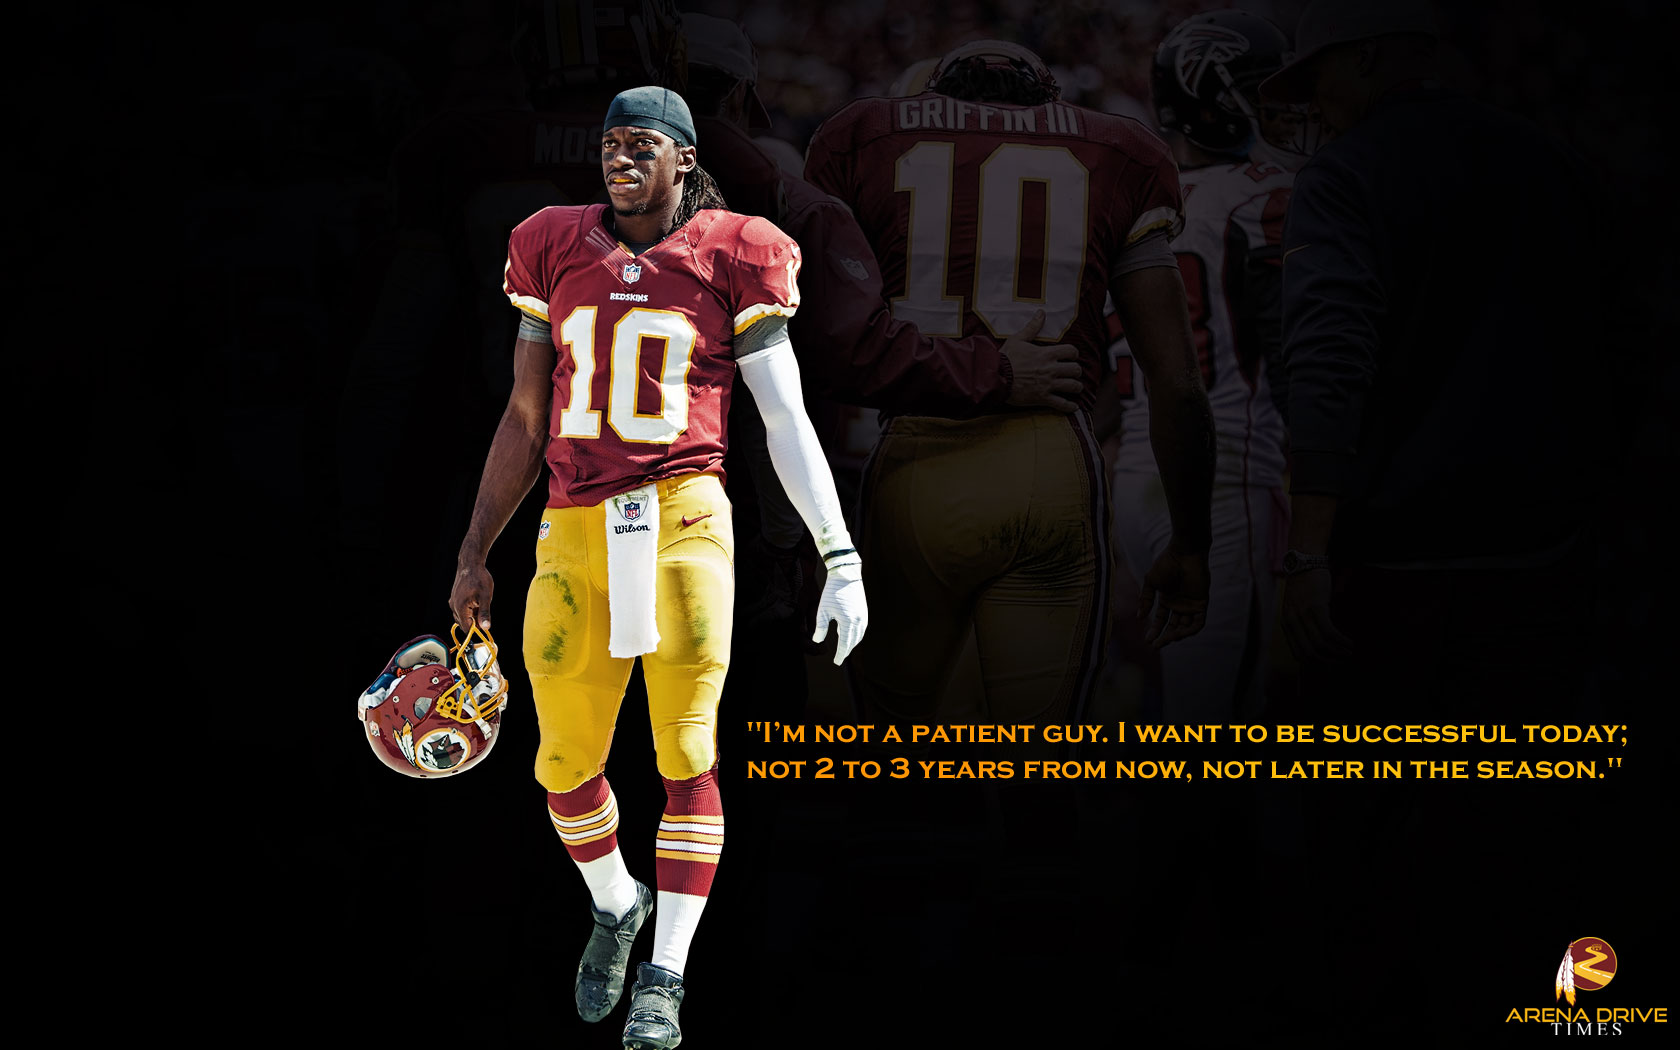 More Washington Redskins wallpapers 1680x1050